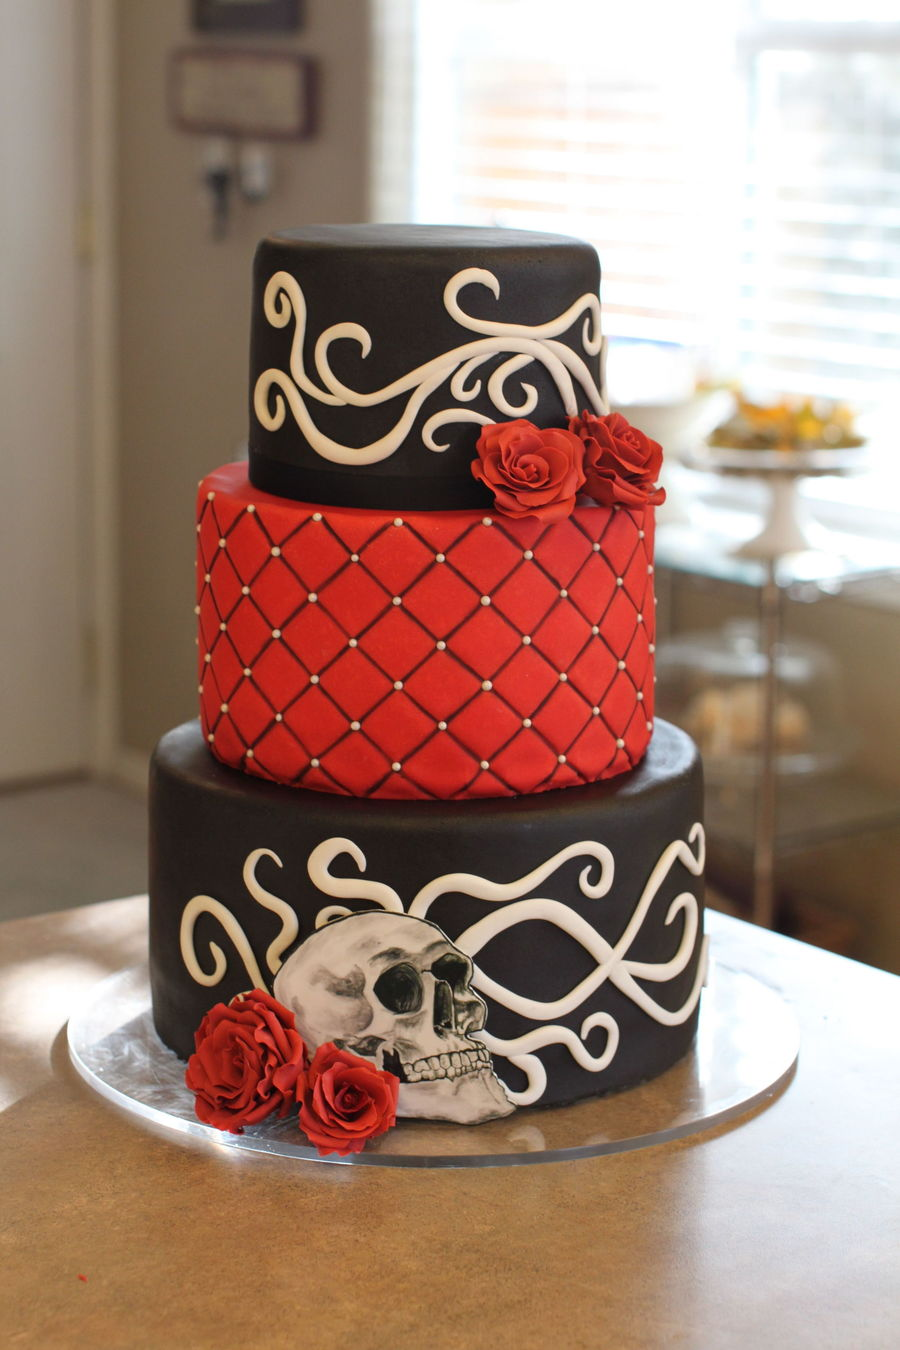 Gothic Rockabilly Wedding Cake With Sugar Roses Filigree And A Hand Painted Skull By Sweet And